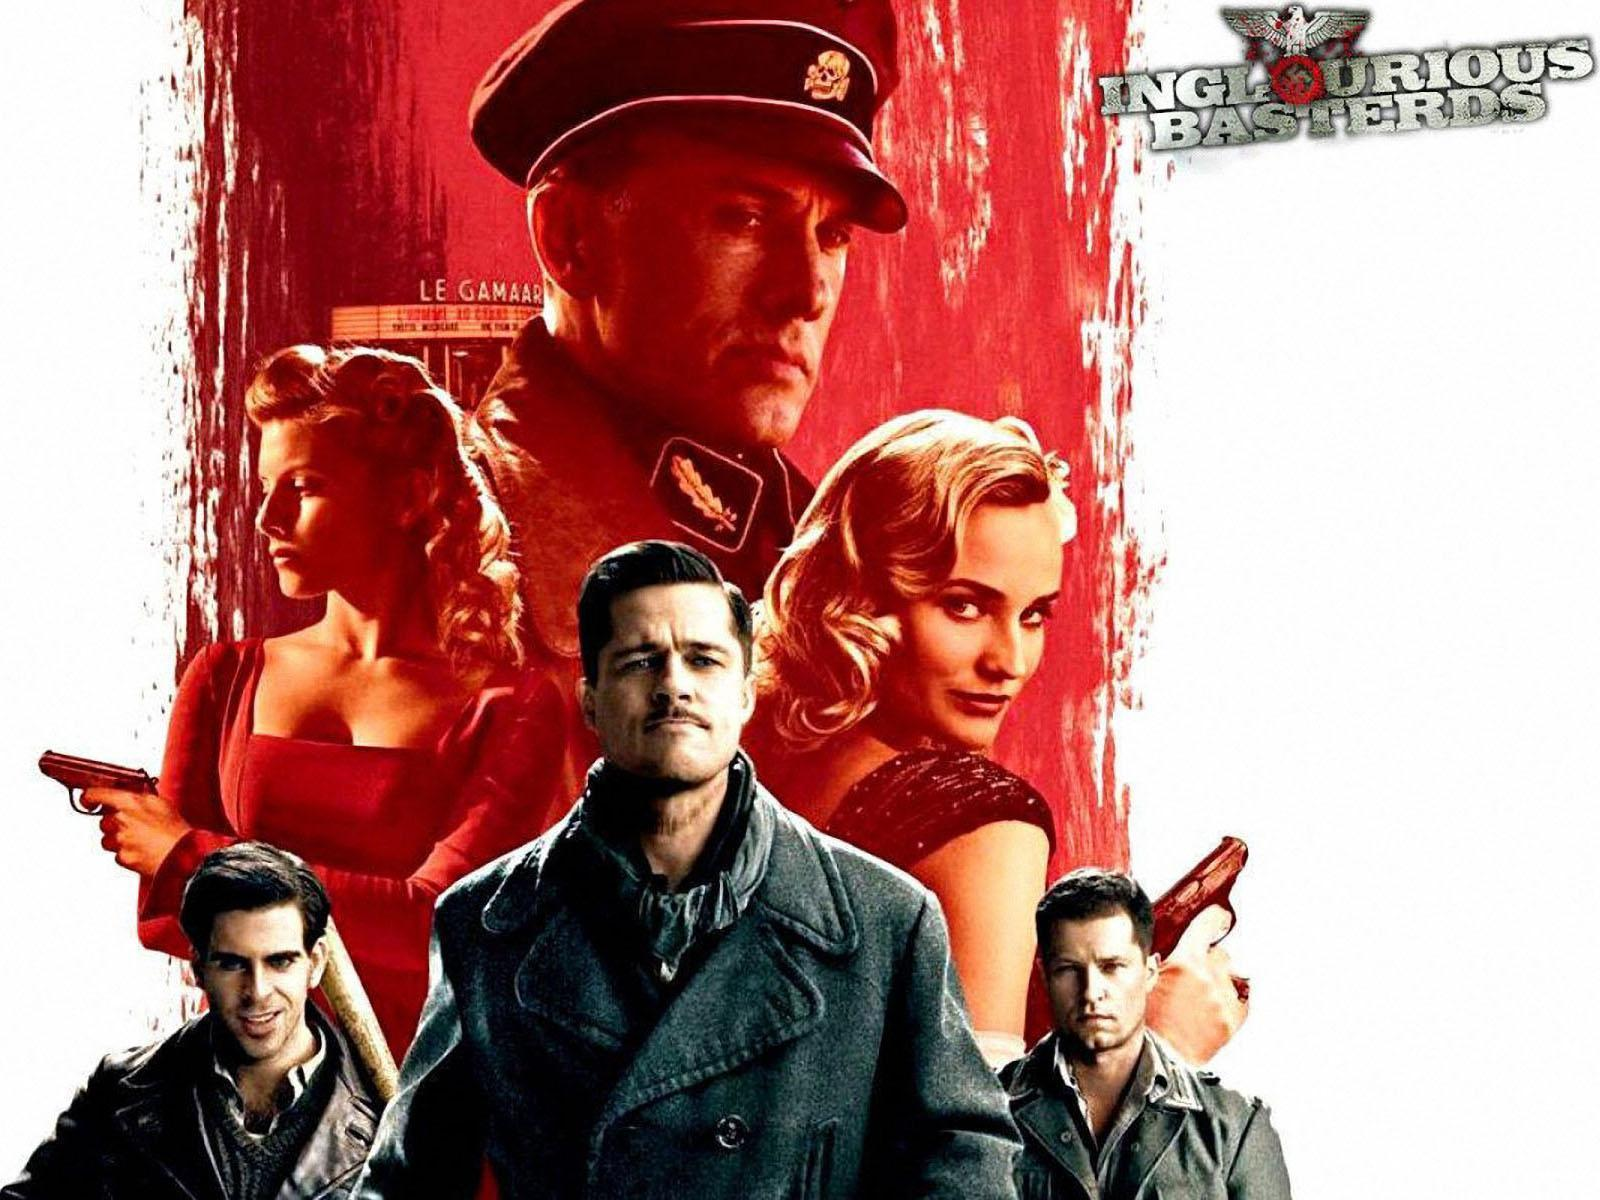 Inglourious Basterds9 Wallpapers,Inglourious Basterds Wallpapers